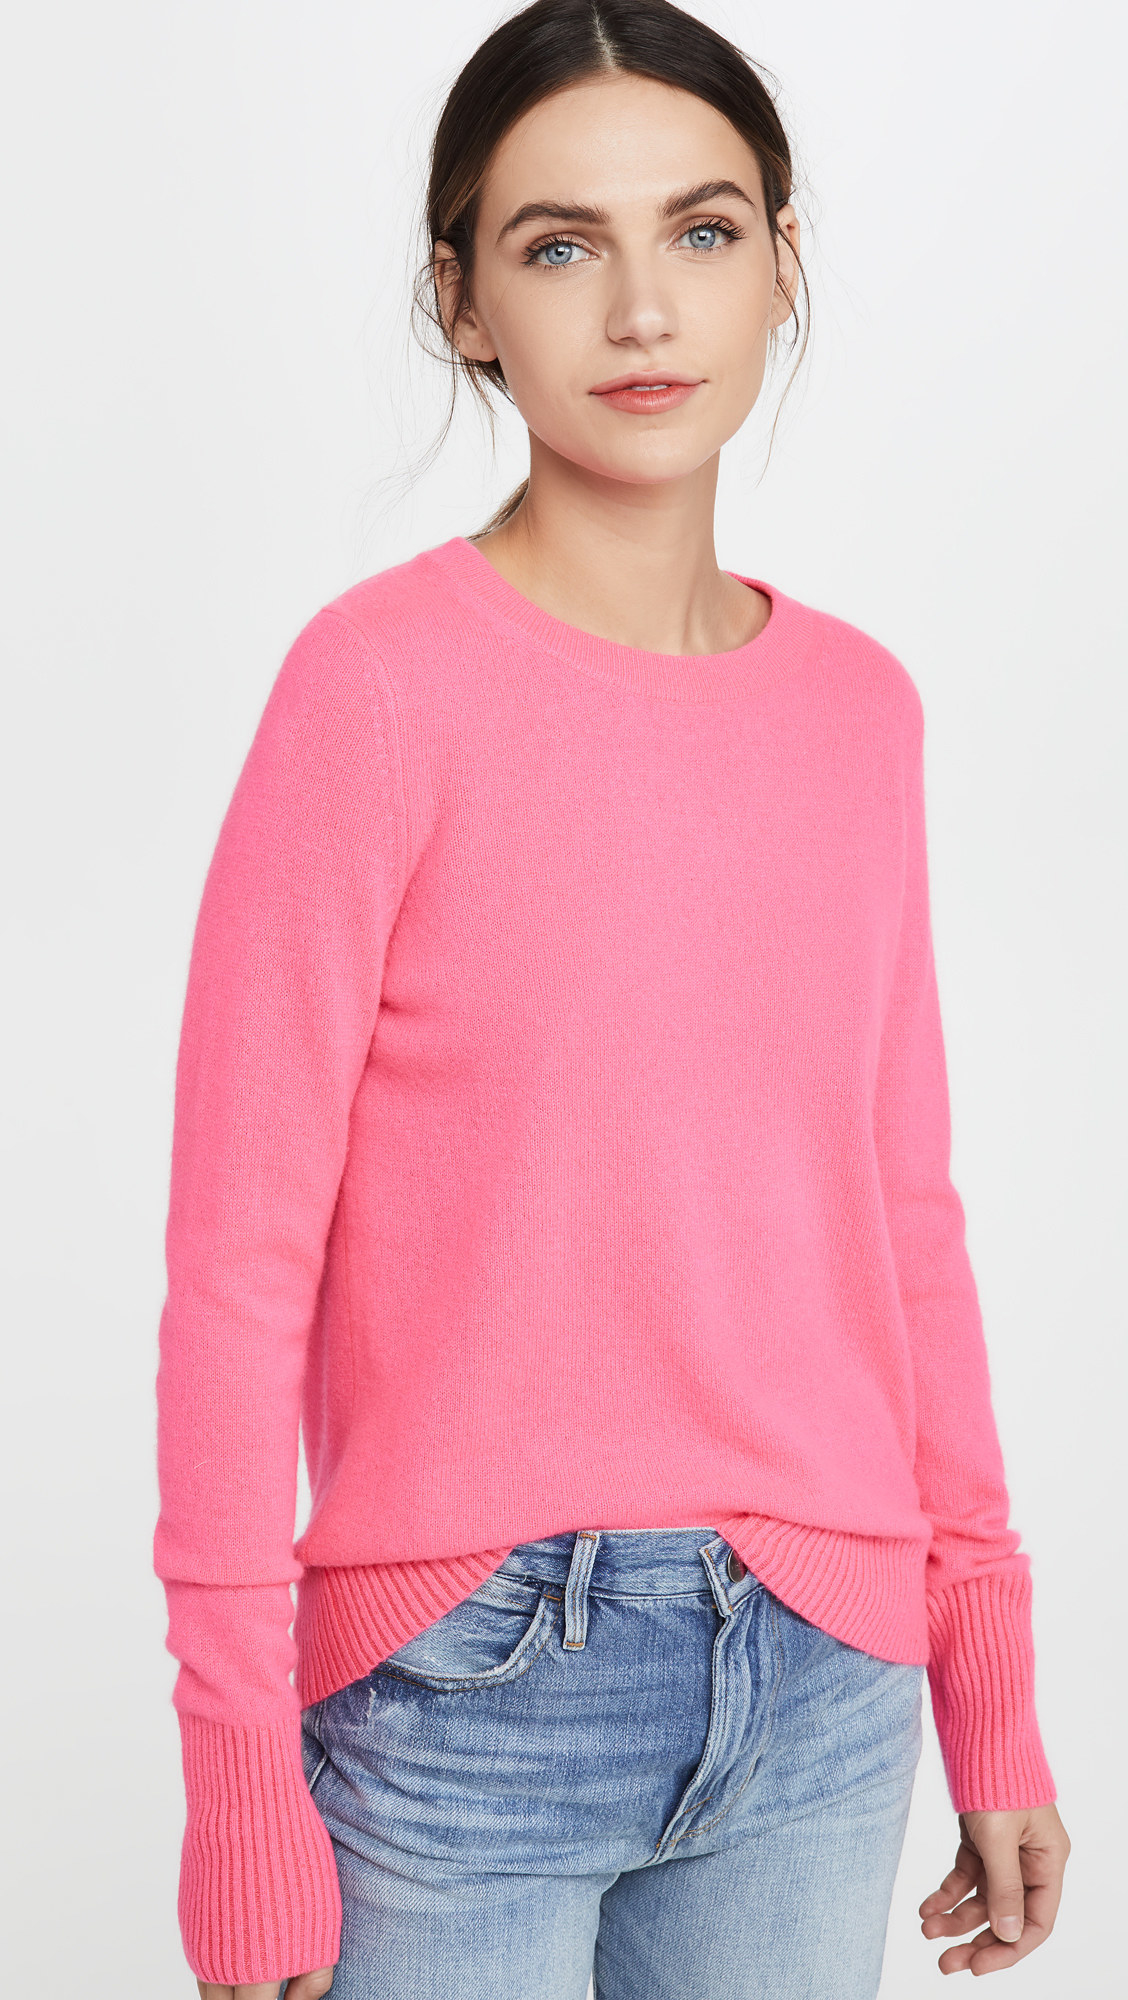 a model wearing a bright pink long sleeve cashmere sweater